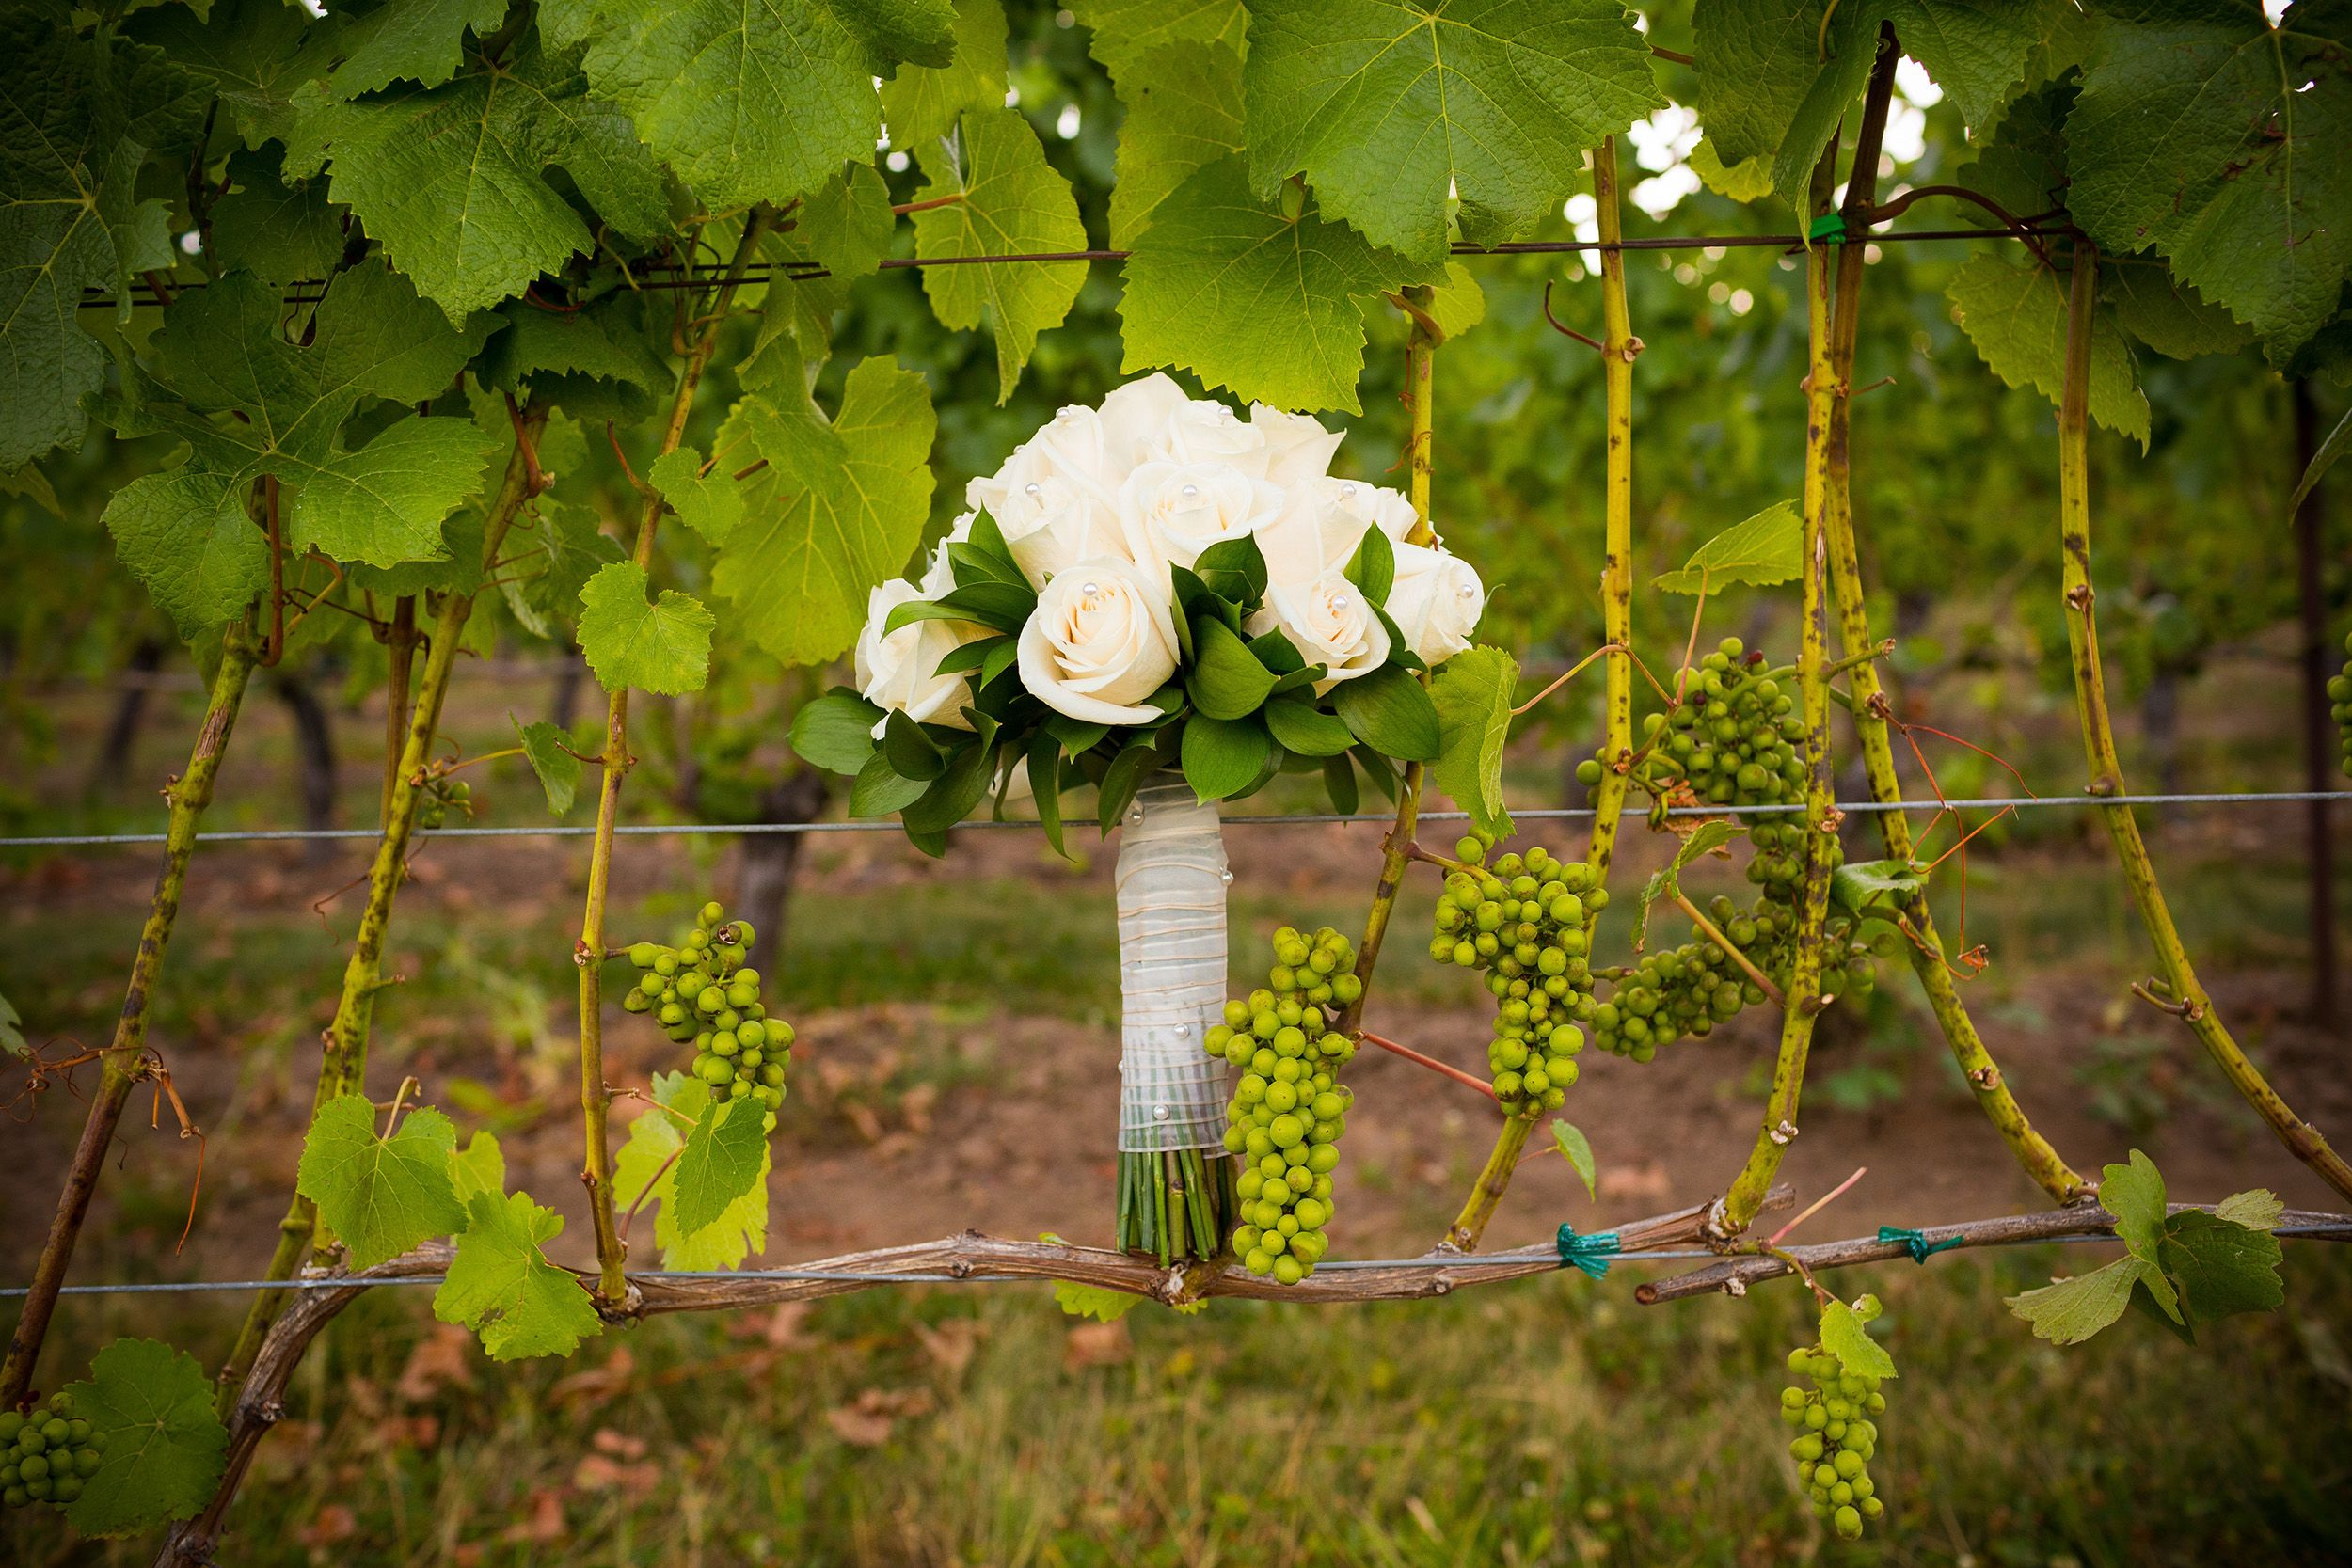 Mixed bouquet in a vineyard (Corney & Barrow/PA)